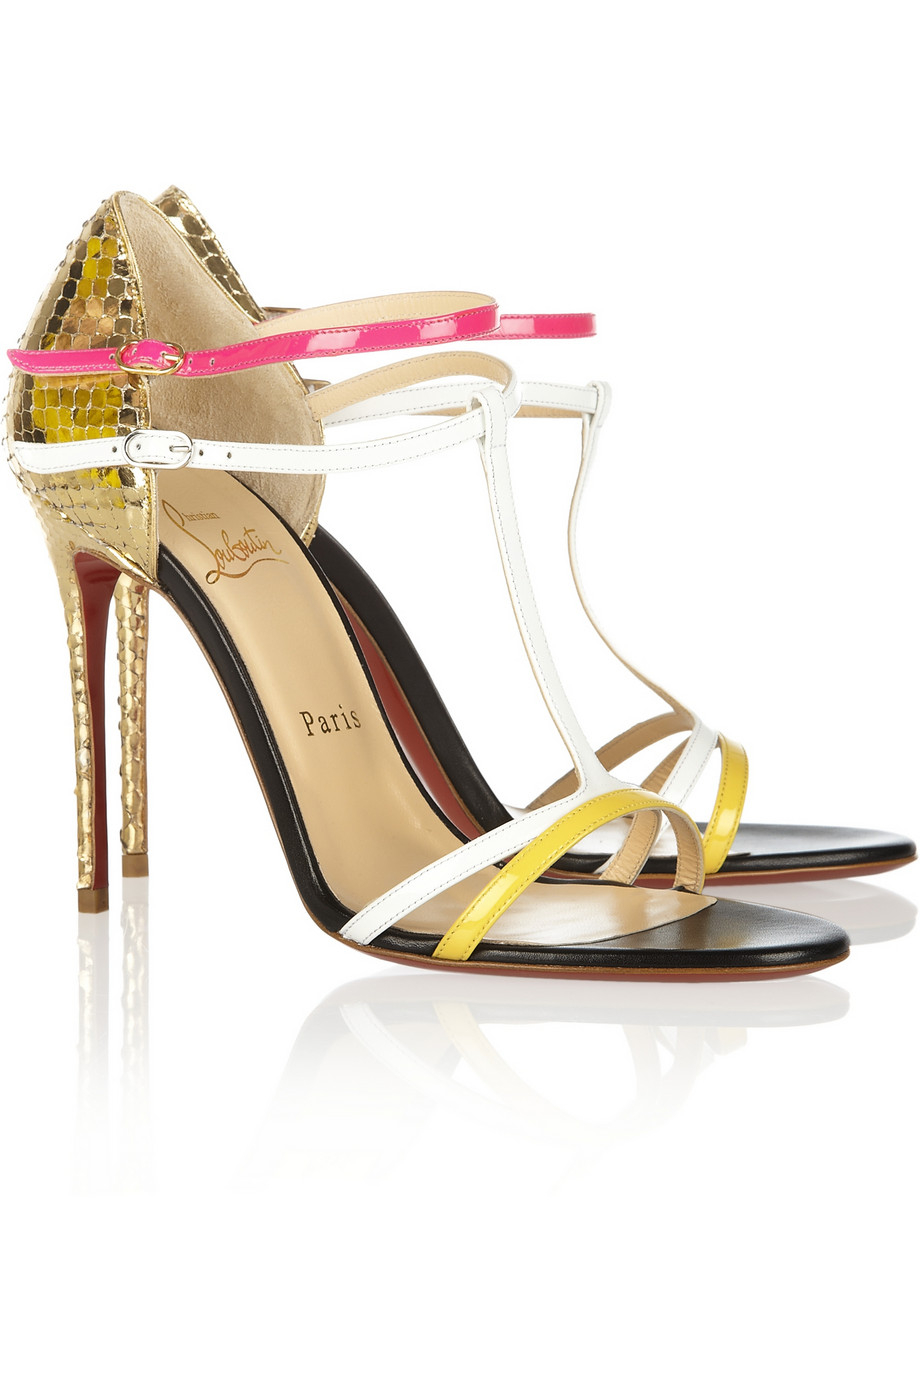 52876a02e36 ... cheapest lyst christian louboutin arnold 100 patent leather sandals in  metallic 3e7af 29e52